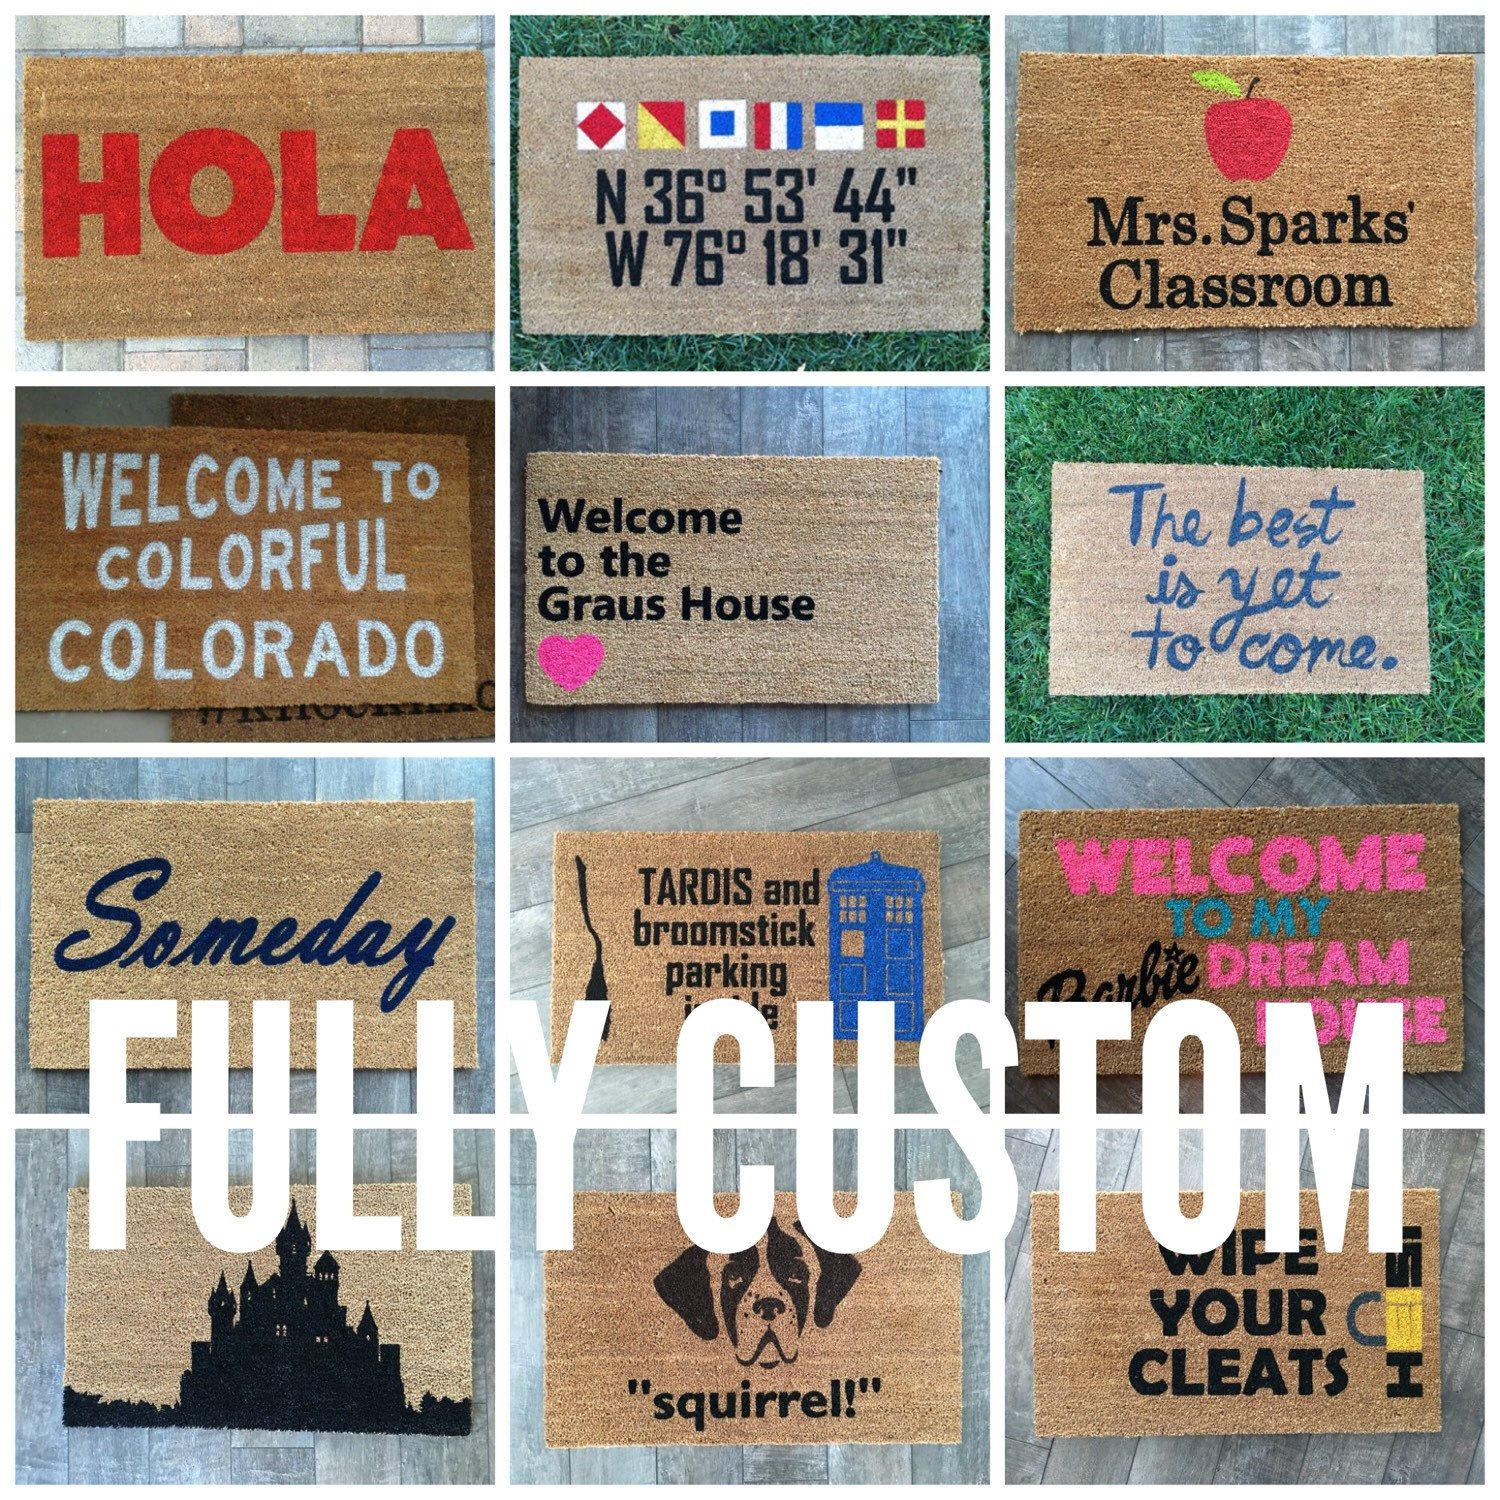 Personalized Welcome Mat Personalized Door Mat Custom Welcome Mat Wedding Gift Custom Doormat Monogram Doormat Monogram Door Mat